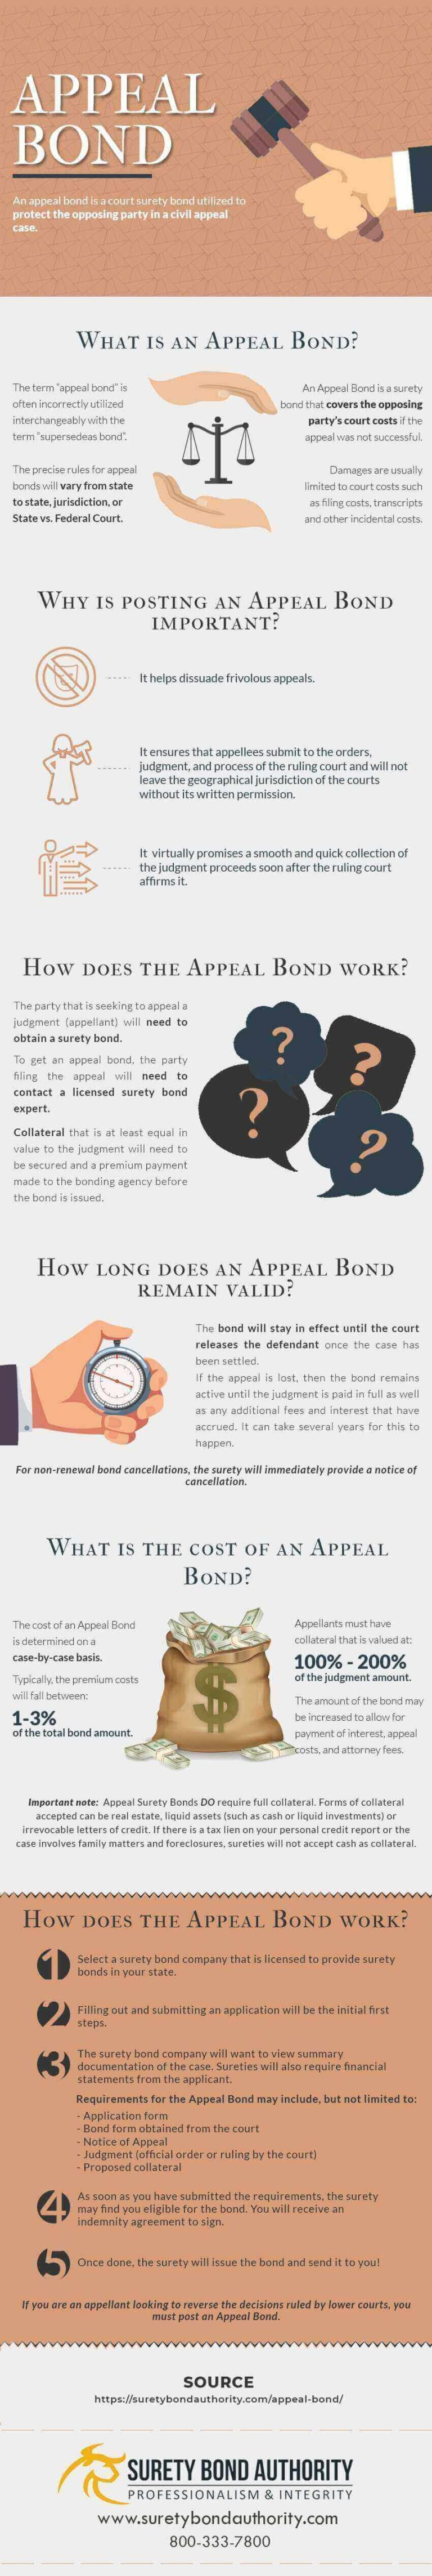 Appeal Bond Infographic